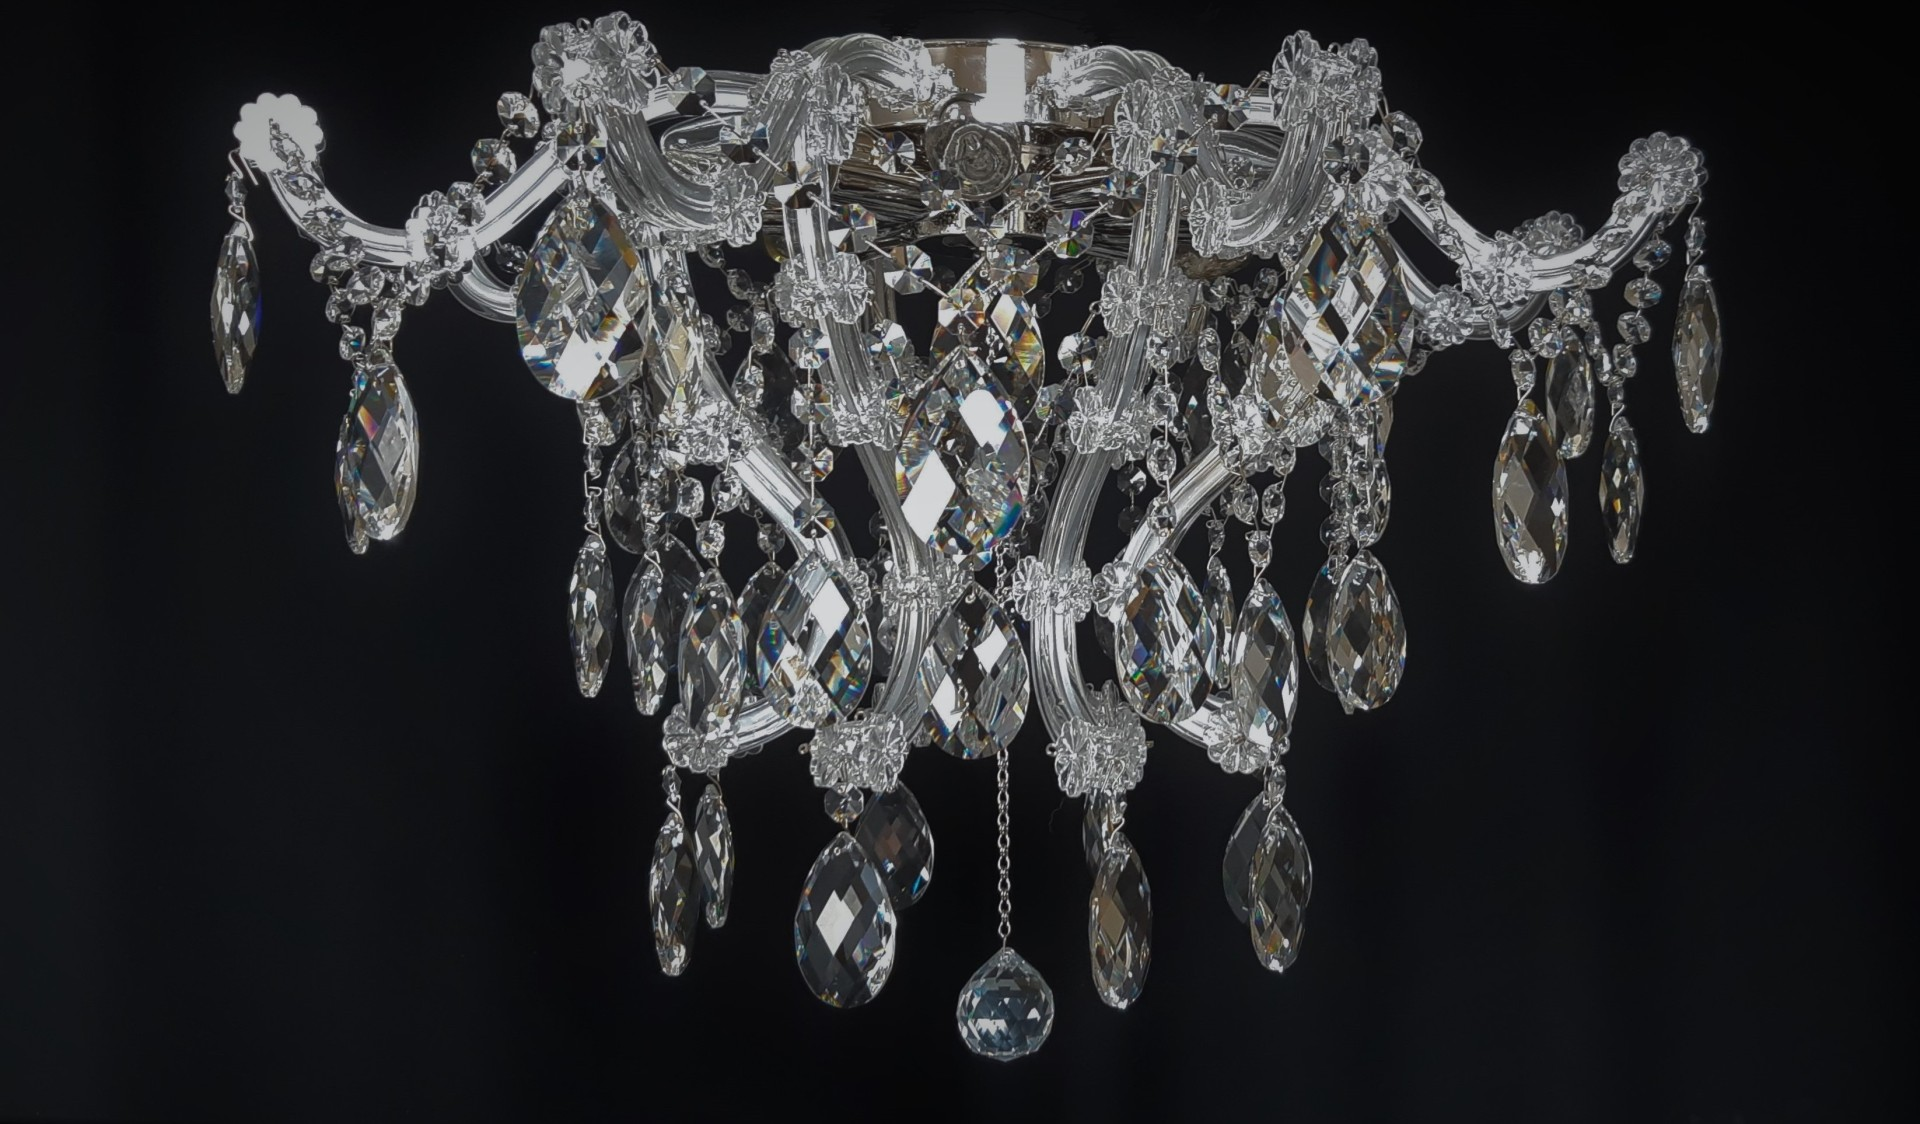 Surface Mounted Theresian Chandelier With Eight Bulbs For Lower Ceilings Bohemian Glass